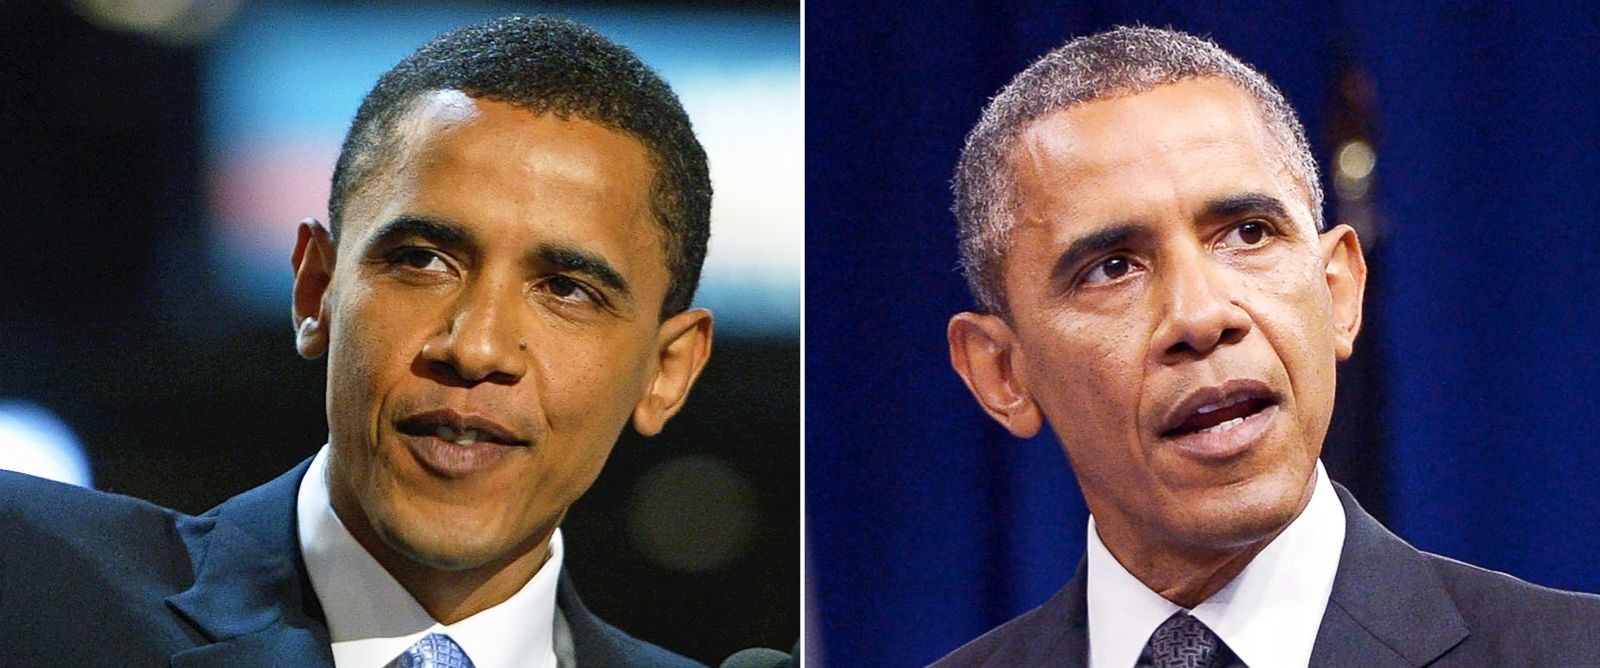 PHOTO: Then-U.S. Senate candidate Barack Obamas hair was significantly darker when he gave the keynote speech at the Democratic National Convention in 2004 (left) than he has now as a second-term President (seen at right on July 28, 2014).